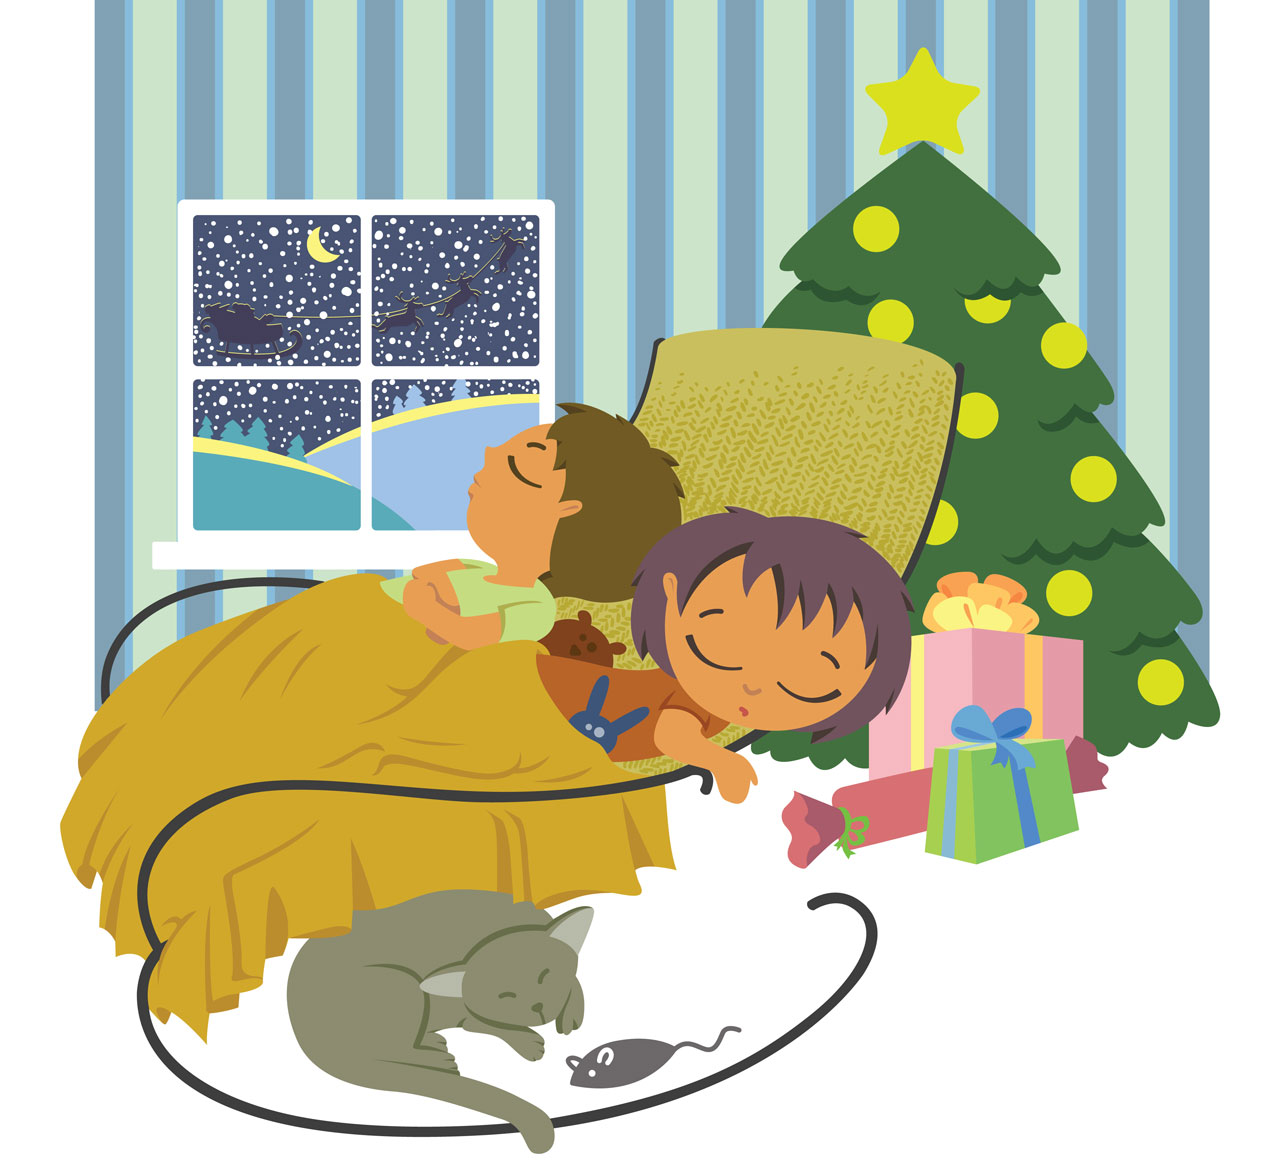 Night clipart asleep Sleep Children Well Silent